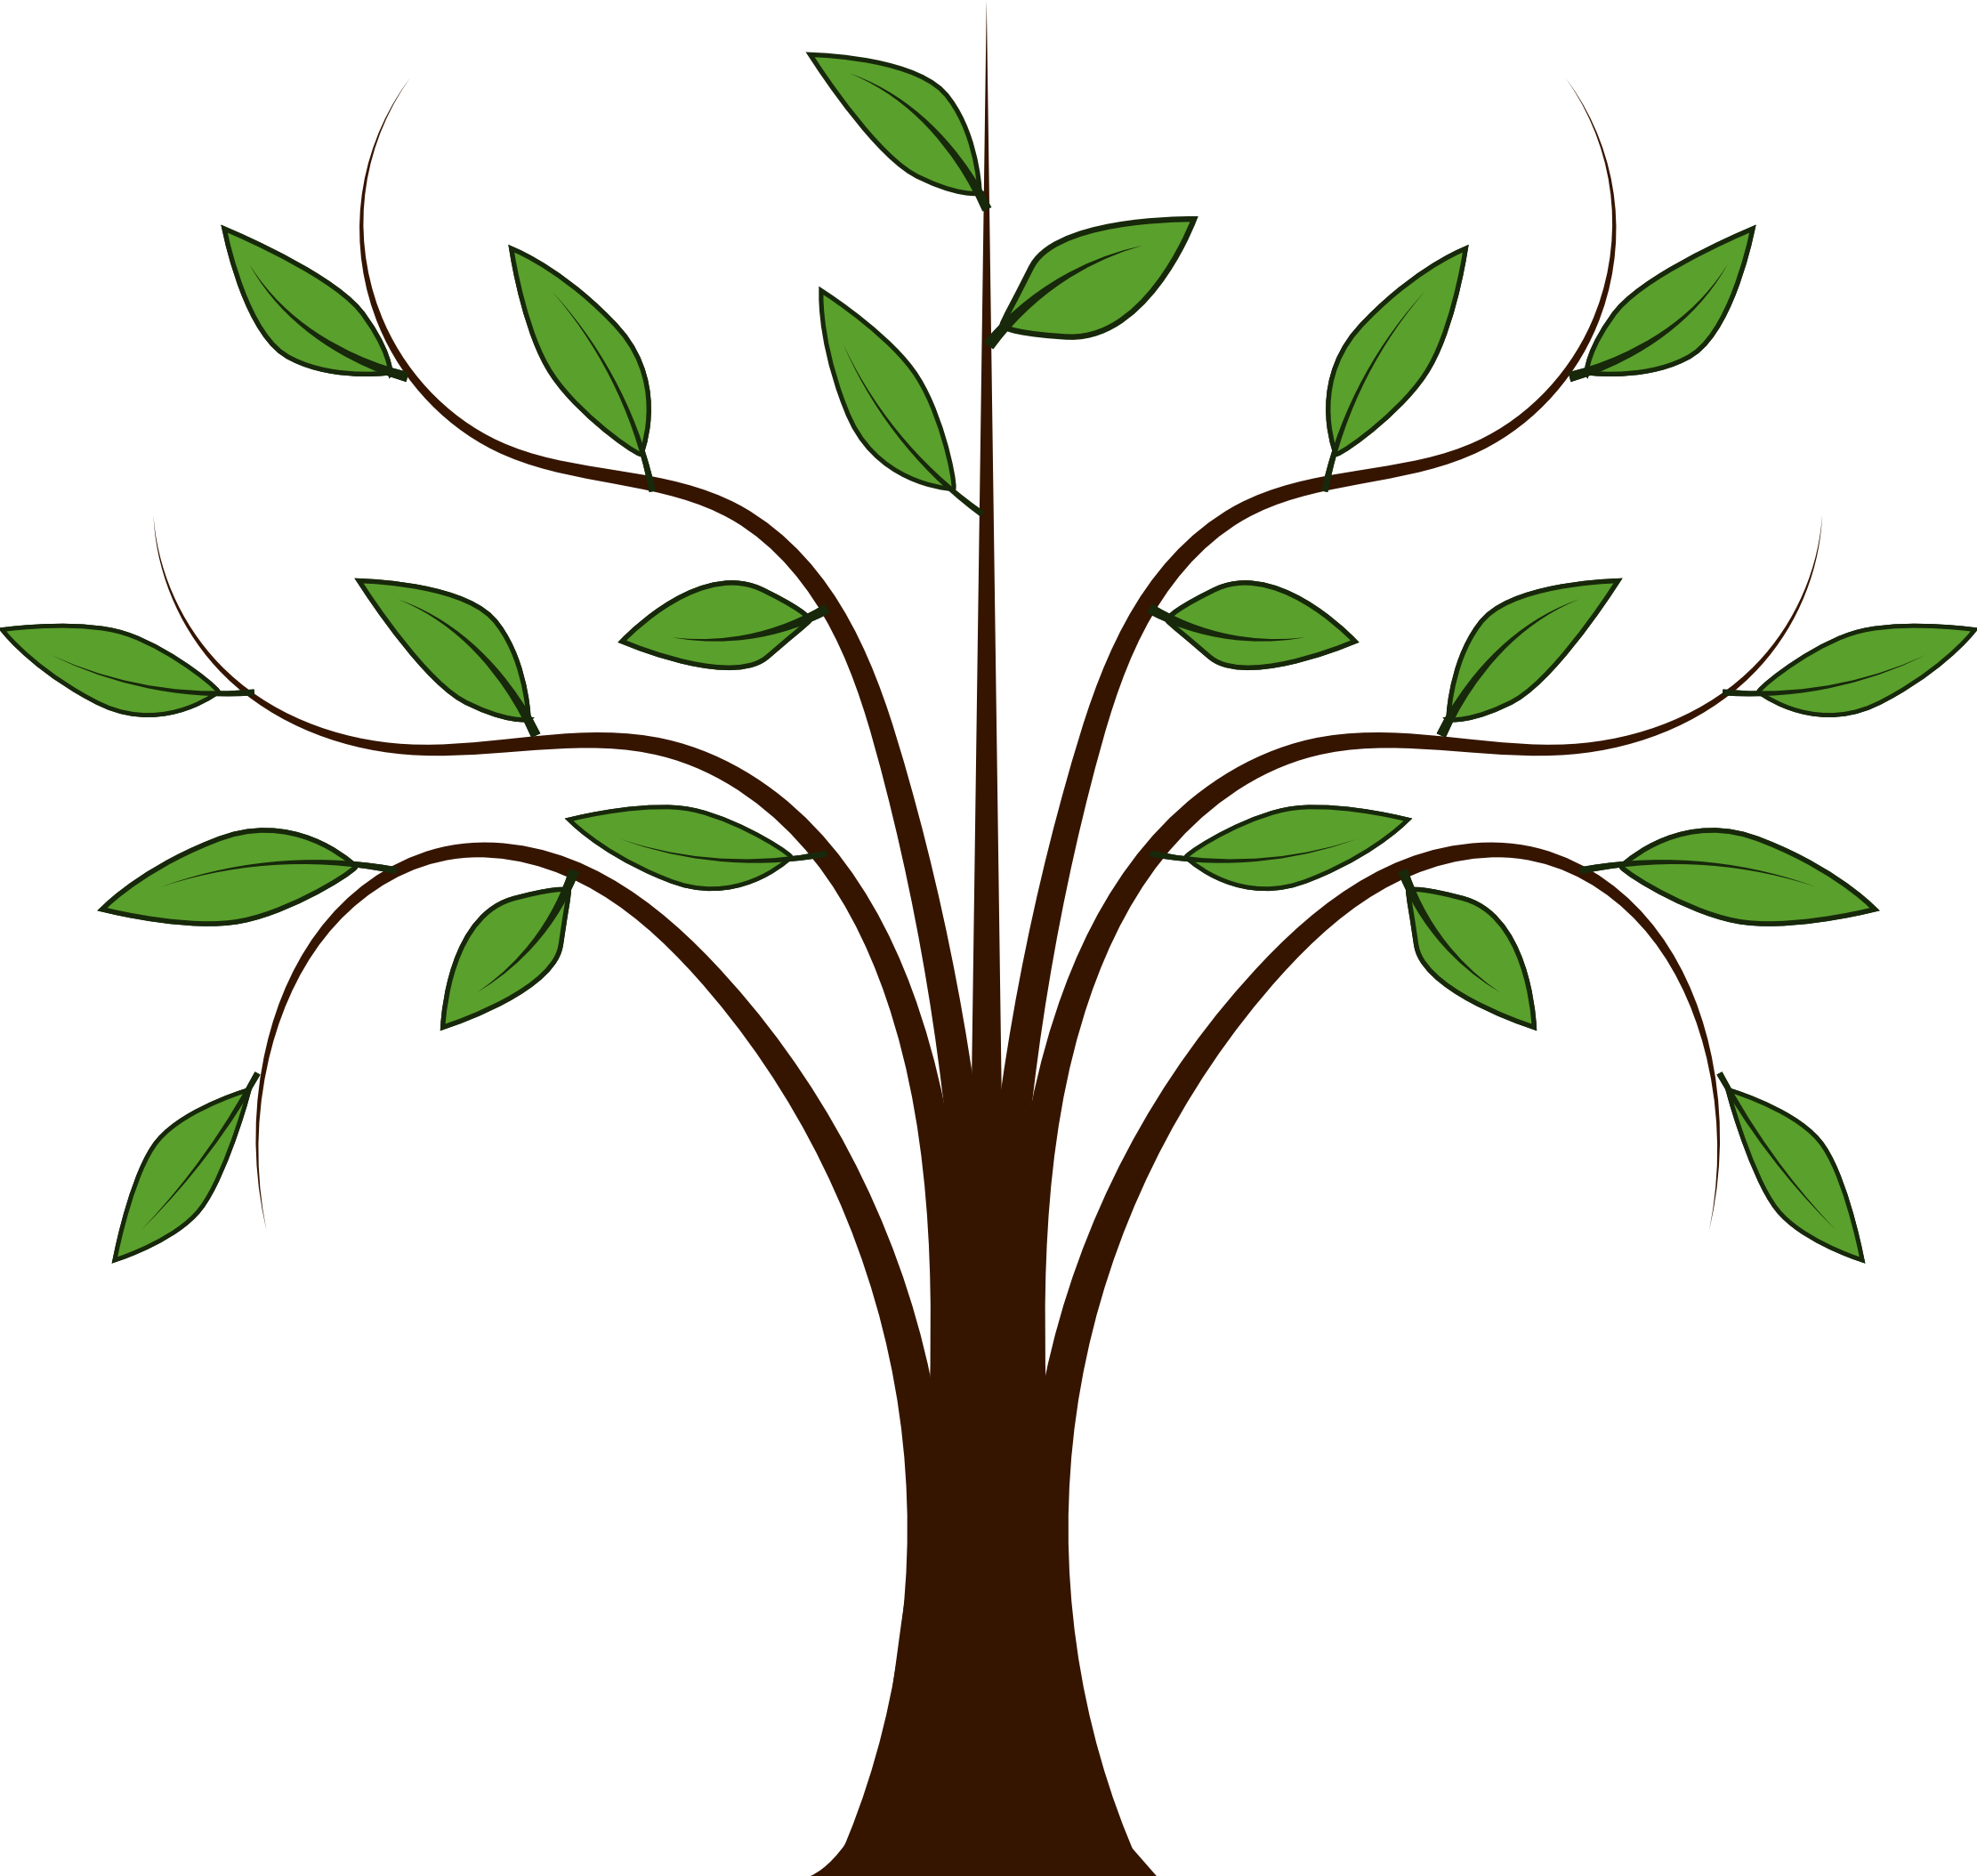 Free Tree Vector Png, Download Free Clip Art, Free Clip Art.